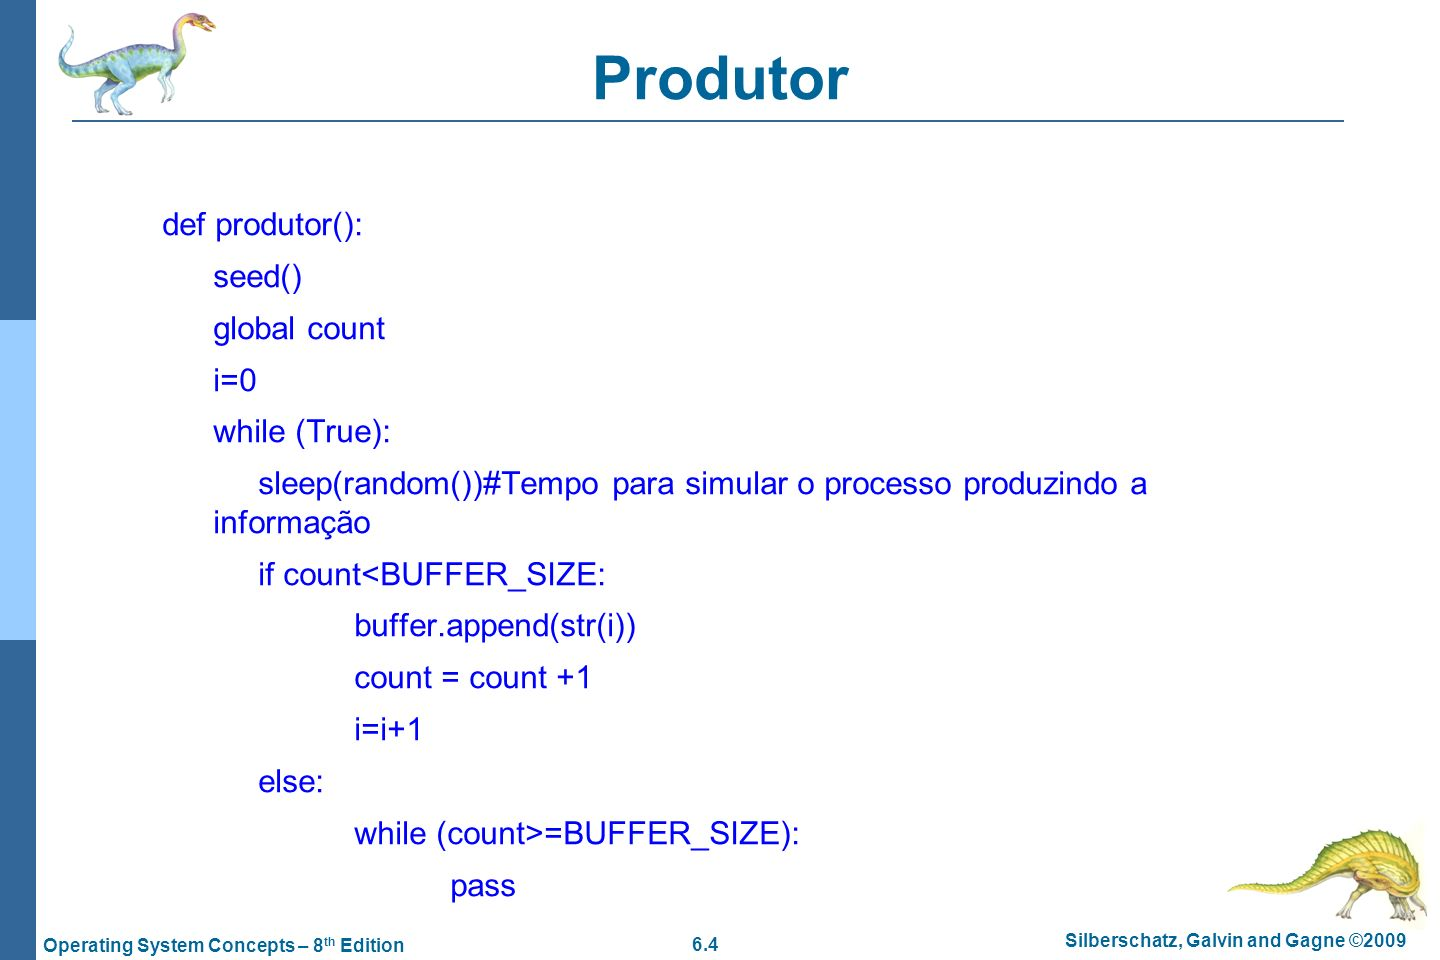 6.45 Silberschatz, Galvin and Gagne ©2009 Operating System Concepts – 8 th Edition Problema dos leitores-escritores Estrutura do processo escritor do { wait (wrt) ; // writing is performed signal (wrt) ; } while (TRUE); Estrutura do processo leitor do { wait (mutex) ; readcount ++ ; if (readcount == 1) wait (wrt) ; signal (mutex) // reading is performed wait (mutex) ; readcount - - ; if (readcount == 0) signal (wrt) ; signal (mutex) ; } while (TRUE); Acabei de ler.